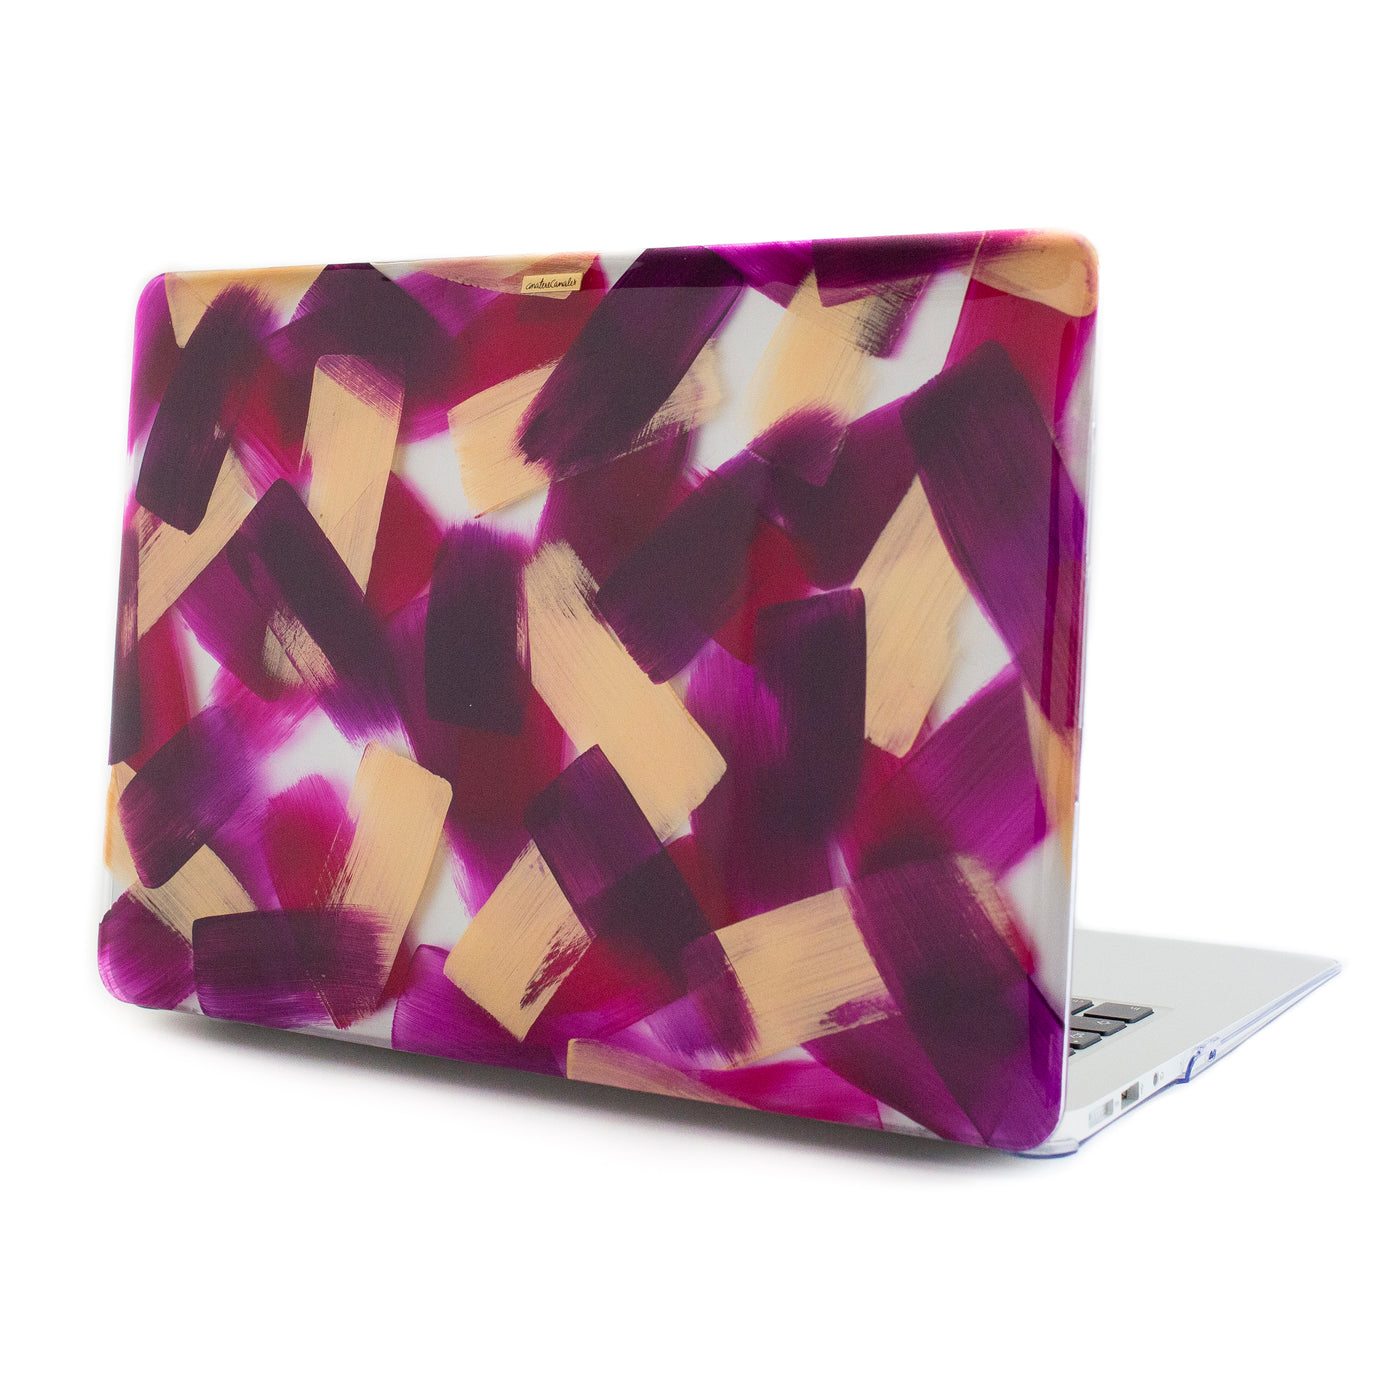 Merlot Signature Strokes Macbook